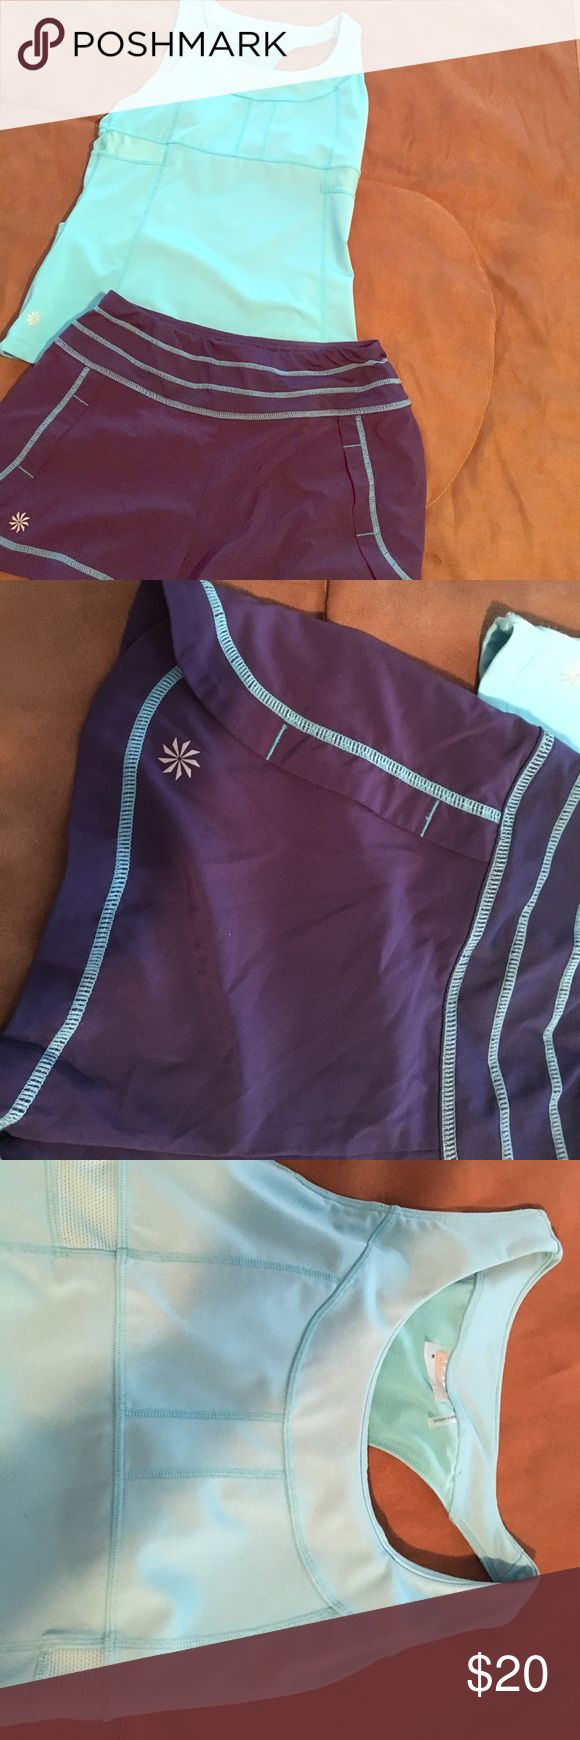 Athleta women's running outfit Athleta women's running outfit in excellent condition. Barely worn. Top is medium with built in bra and bottoms are XS but fit very comfortably. Athleta Other